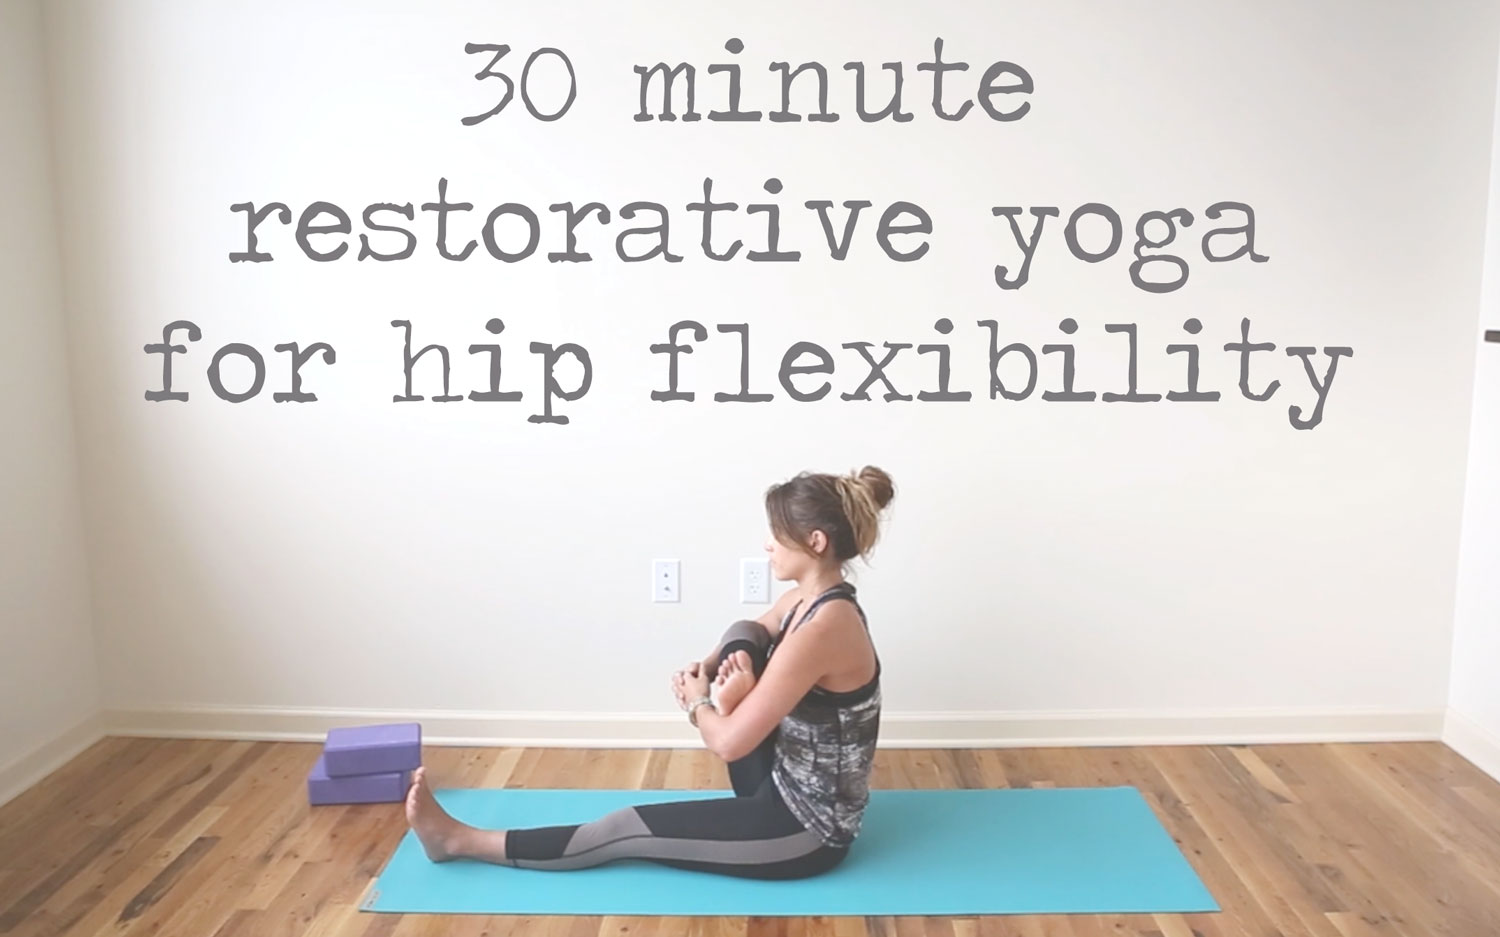 Pin now, practice restorative yoga for hip flexibility later!   Wearing:  alala leggings  &  top  c/o. Using:  blocks ,  jade yoga mat .